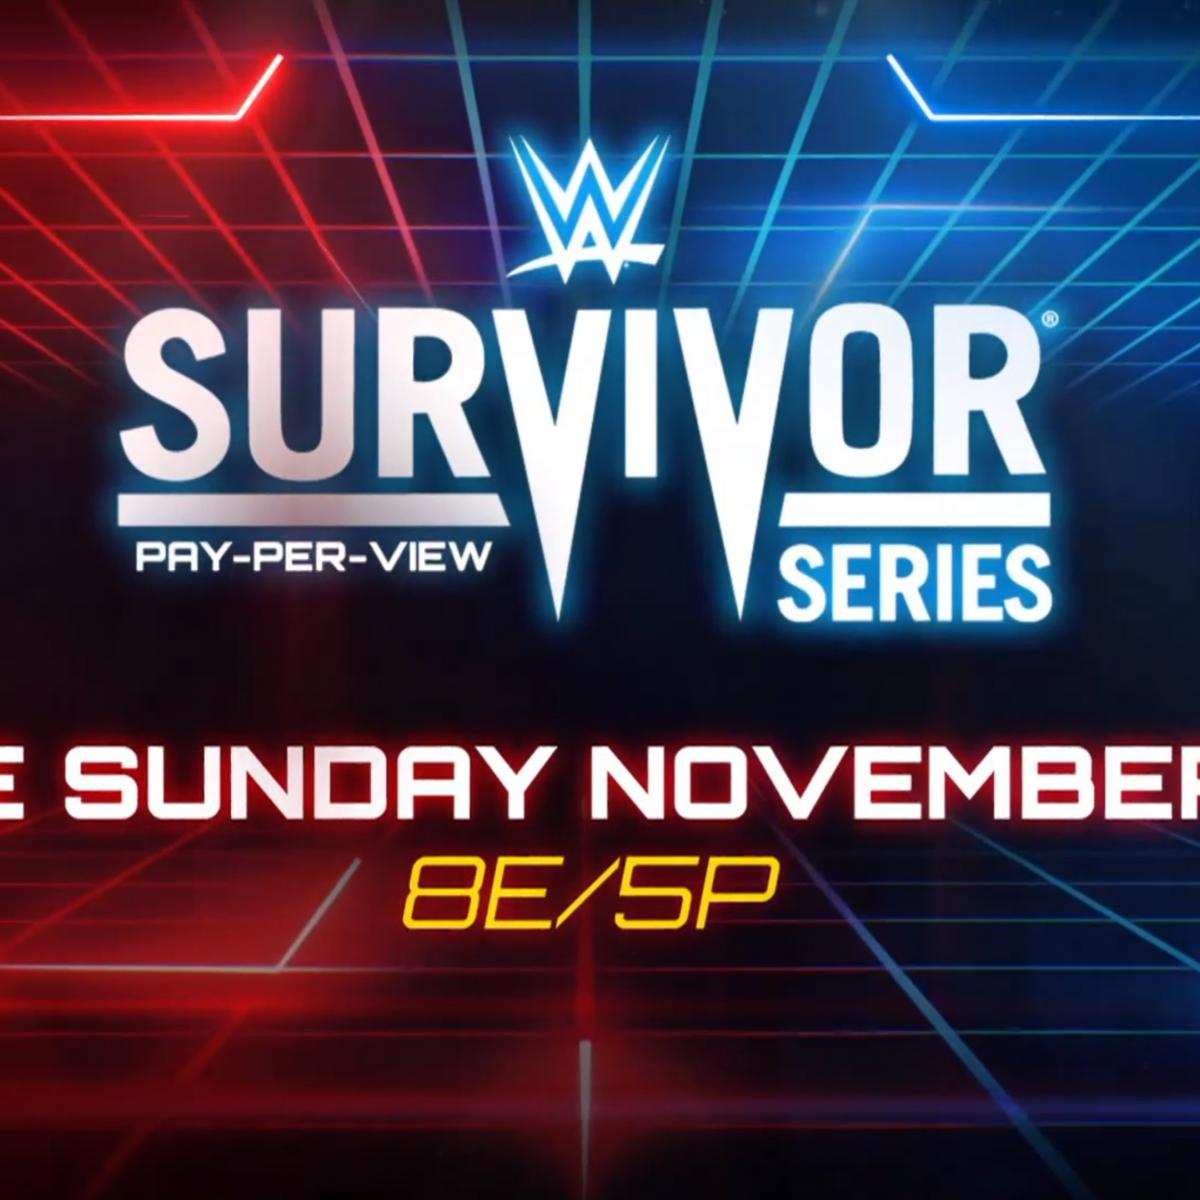 WWE Survivor Series 2021 Match Predictions for Biggest Raw and SmackDown Stars